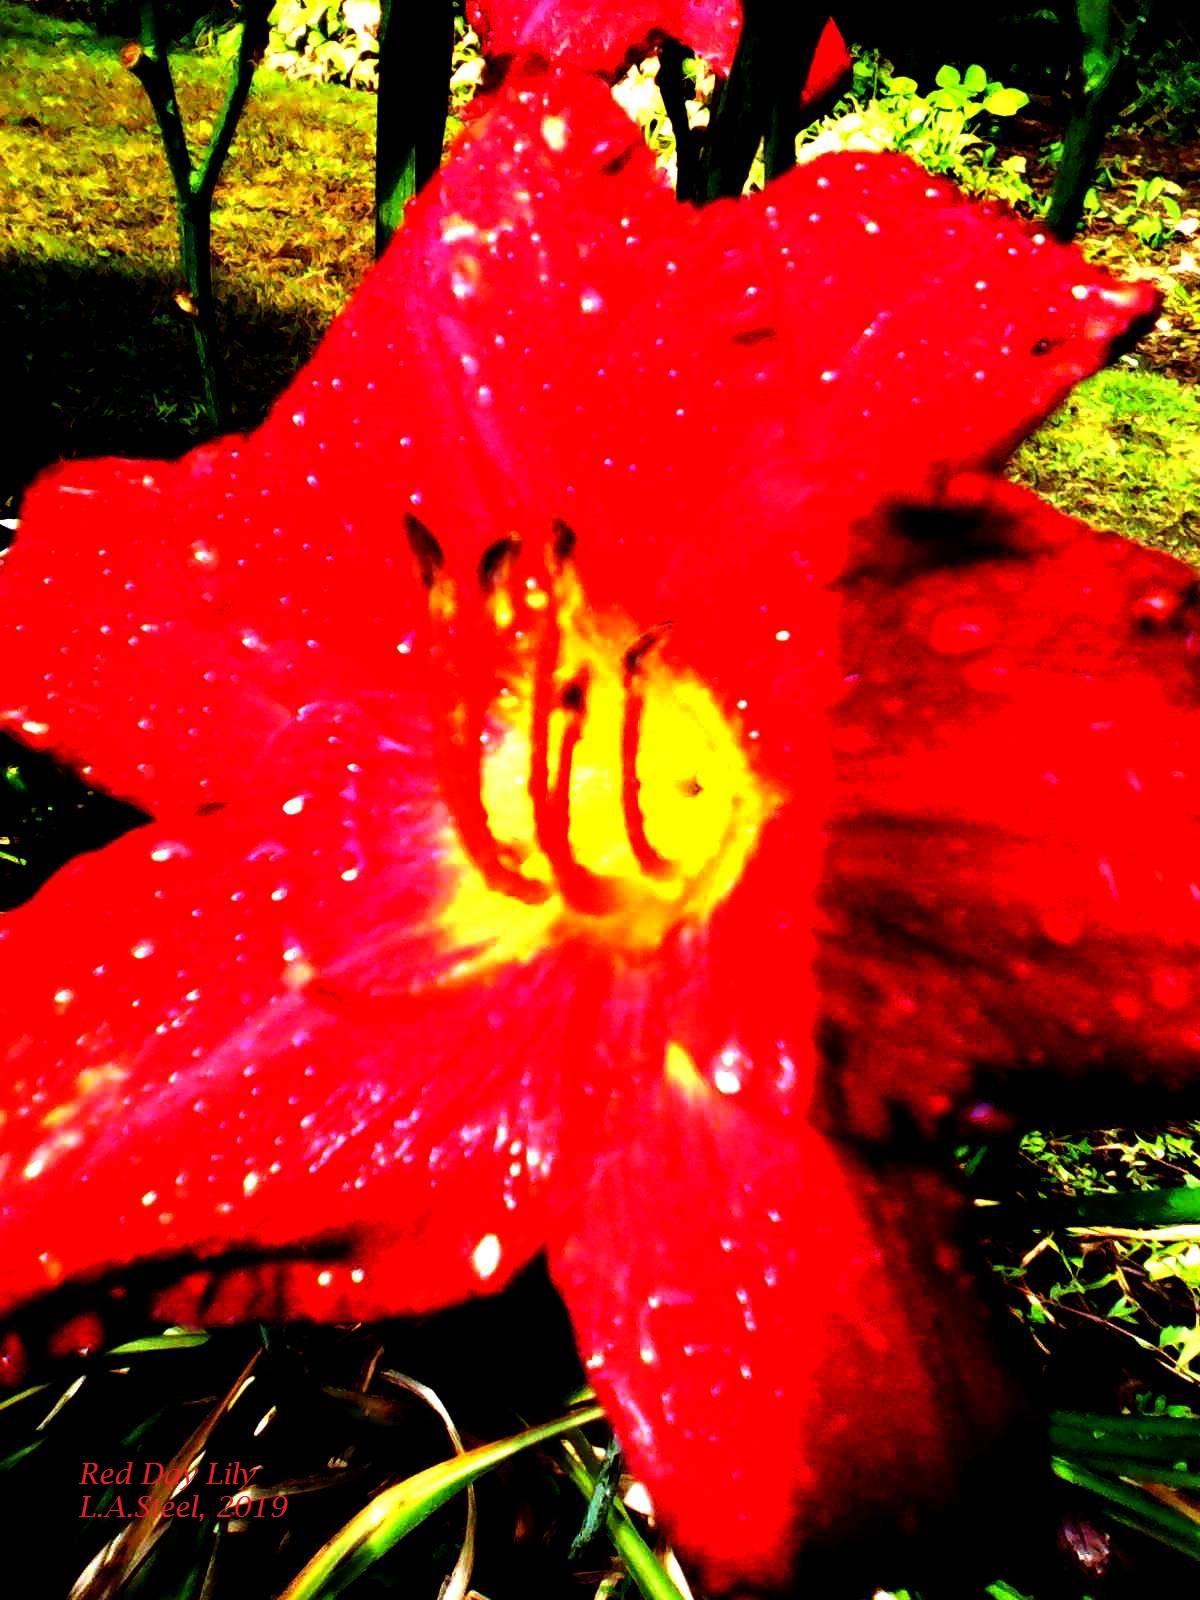 red day lily 4 2019